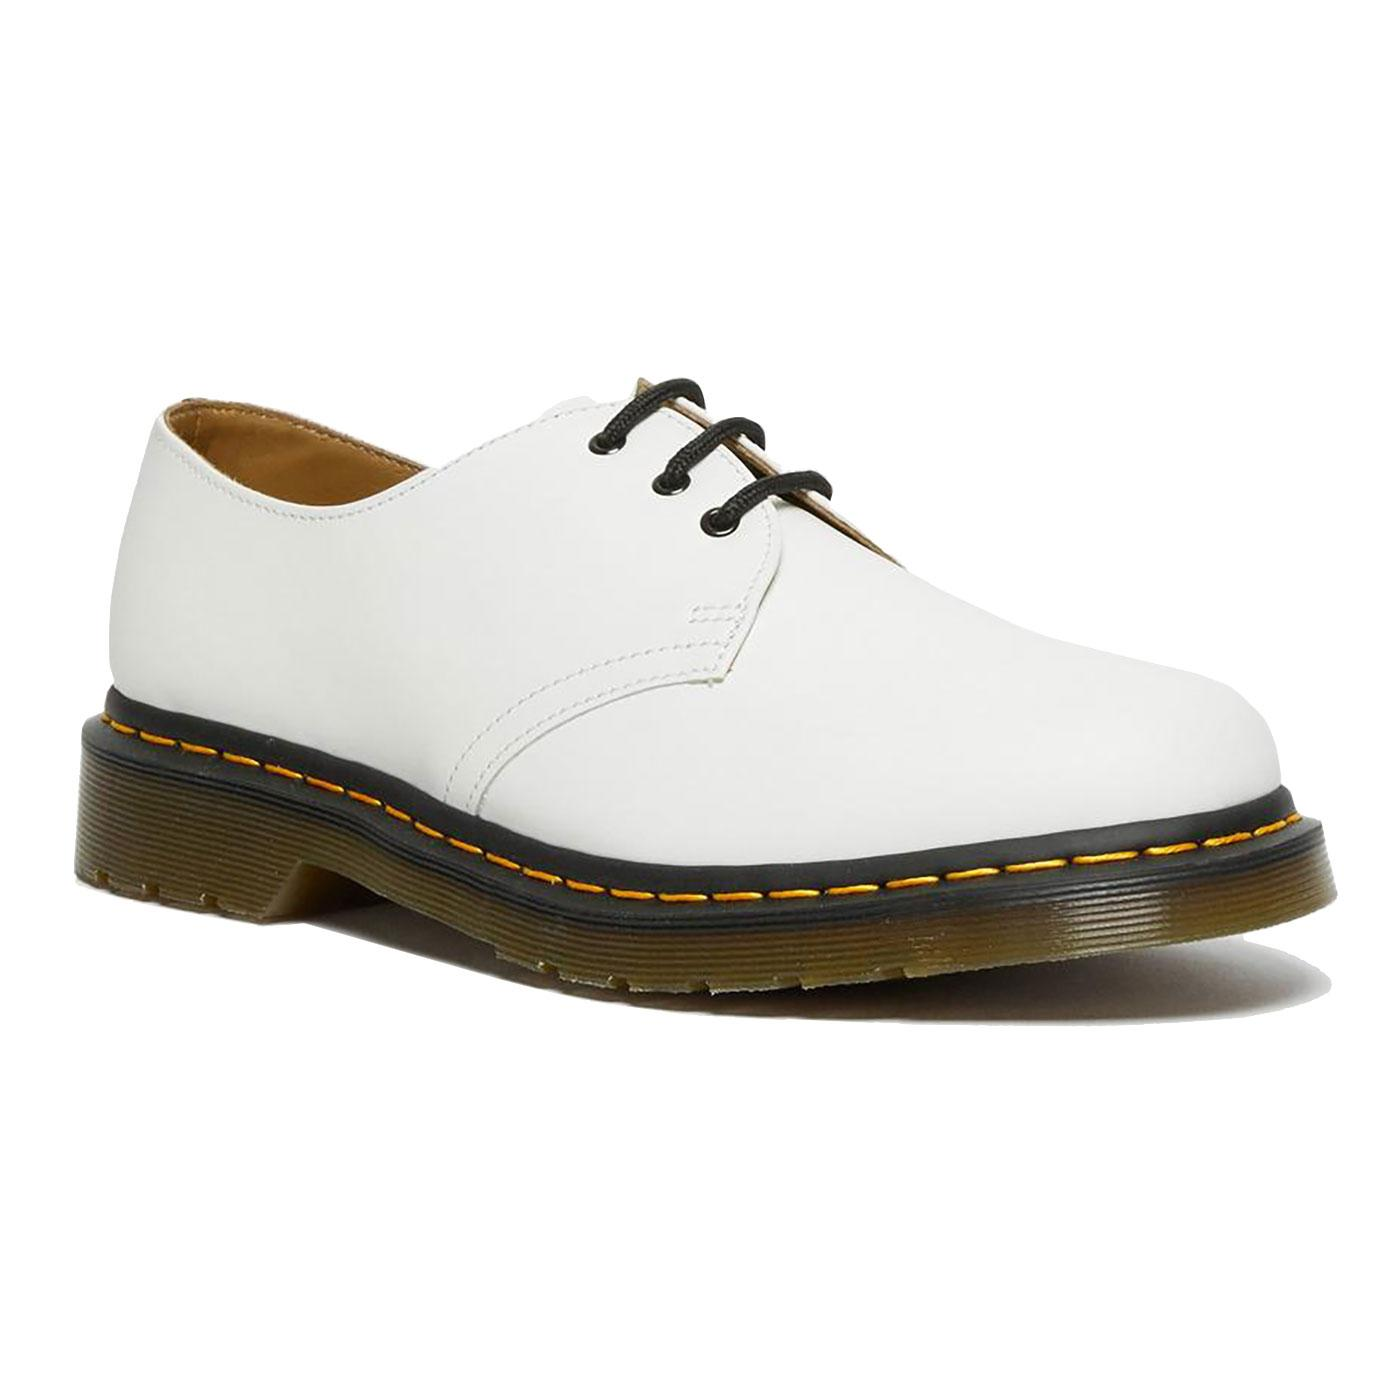 1461 DR MARTENS Men's Smooth Leather Oxford Shoes